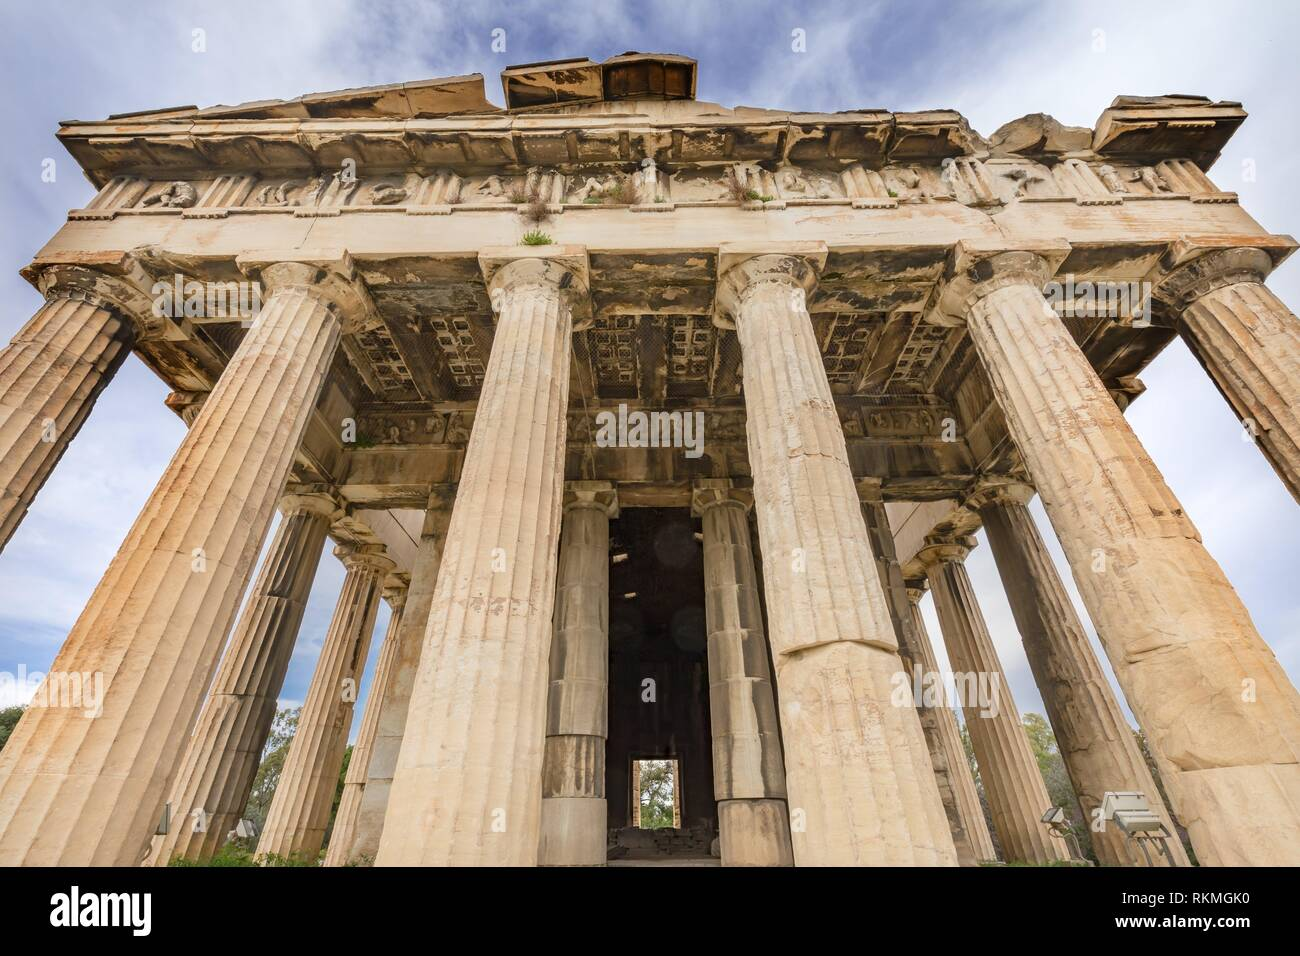 Ancient Temple of Hephaestus Columns Agora Market Place Athens Greece. Agora founded 6th Century BC. Temple for God of craftsmanship, metal working Stock Photo